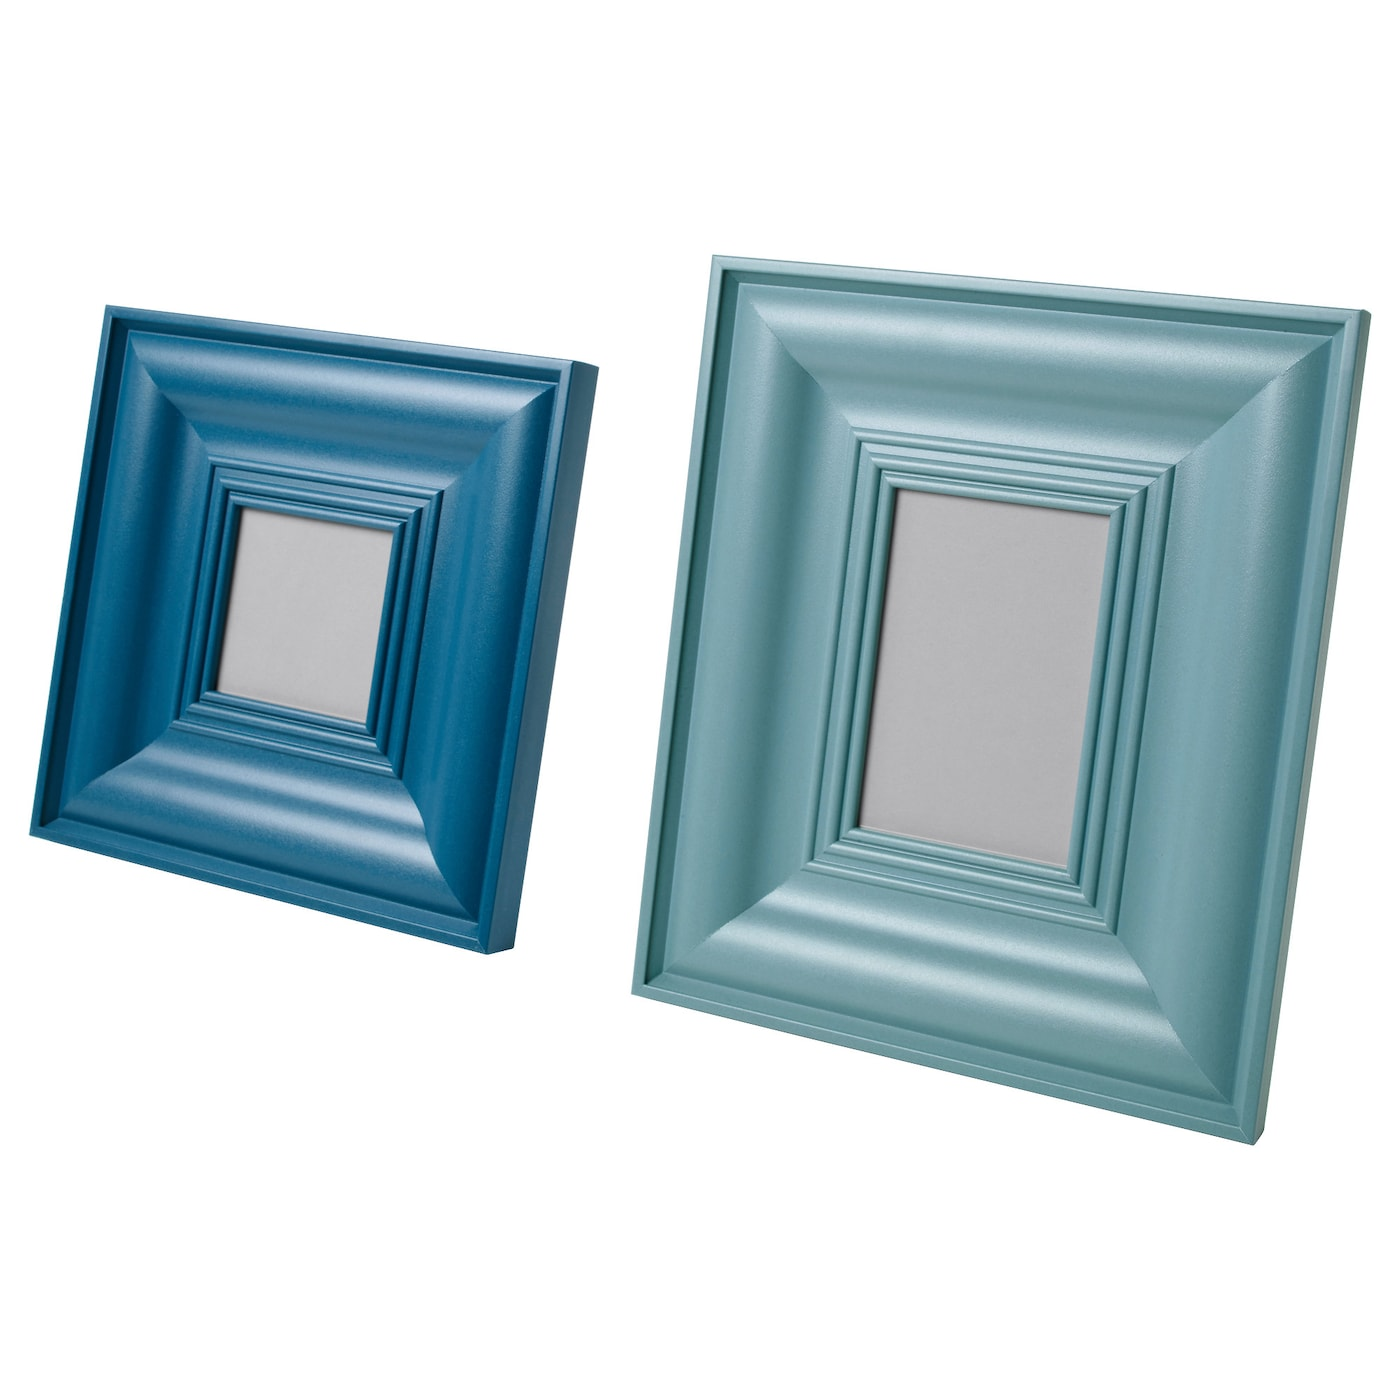 IKEA SKATTEBY frame, set of 2 Front protection in plastic makes the frame safer to use.